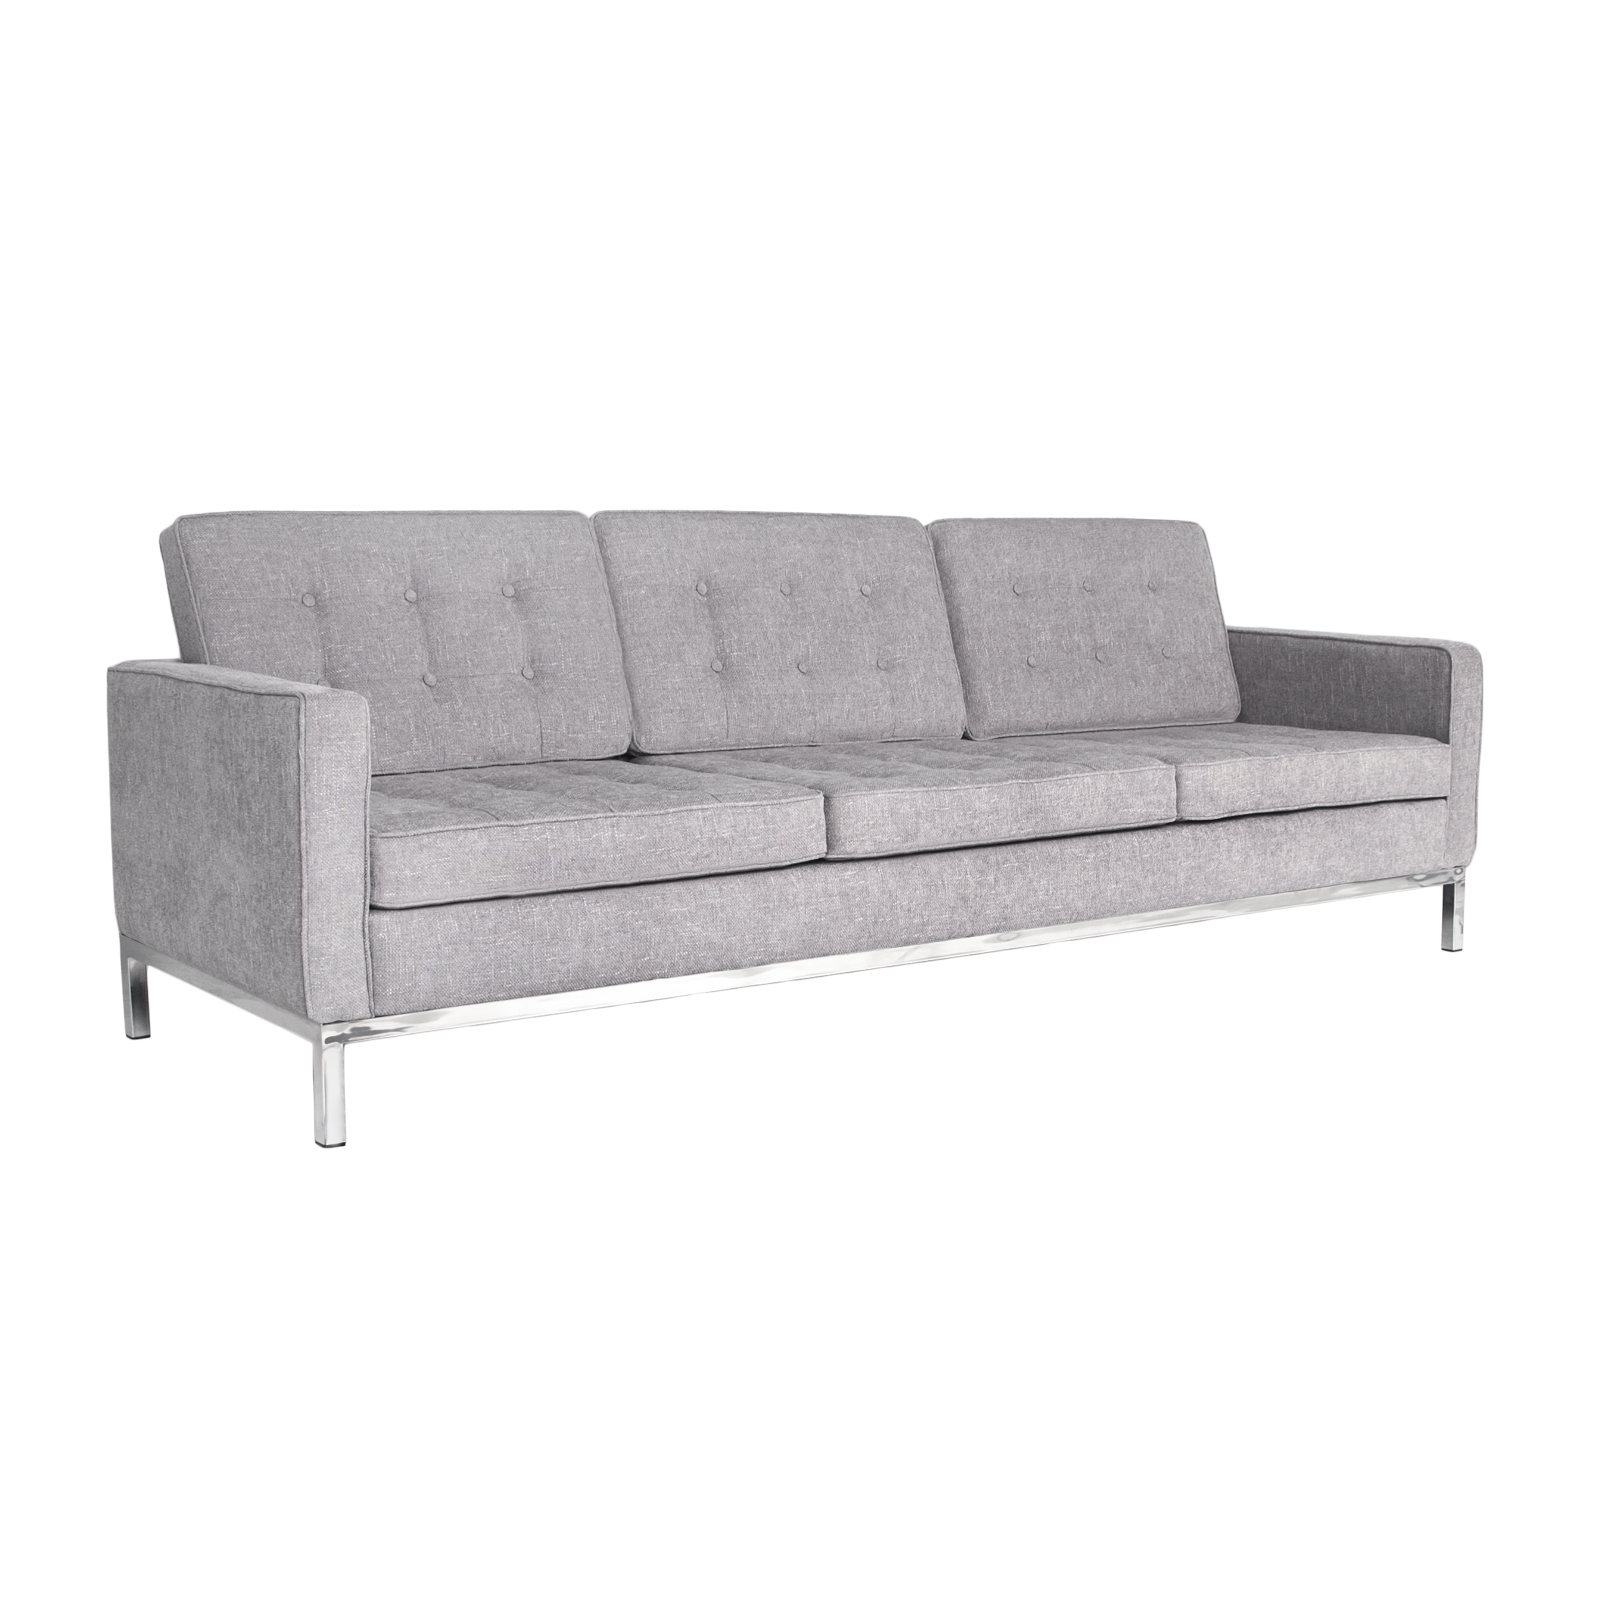 Knoll Couch Florence Knoll Sofa Rentals Event Furniture Rental